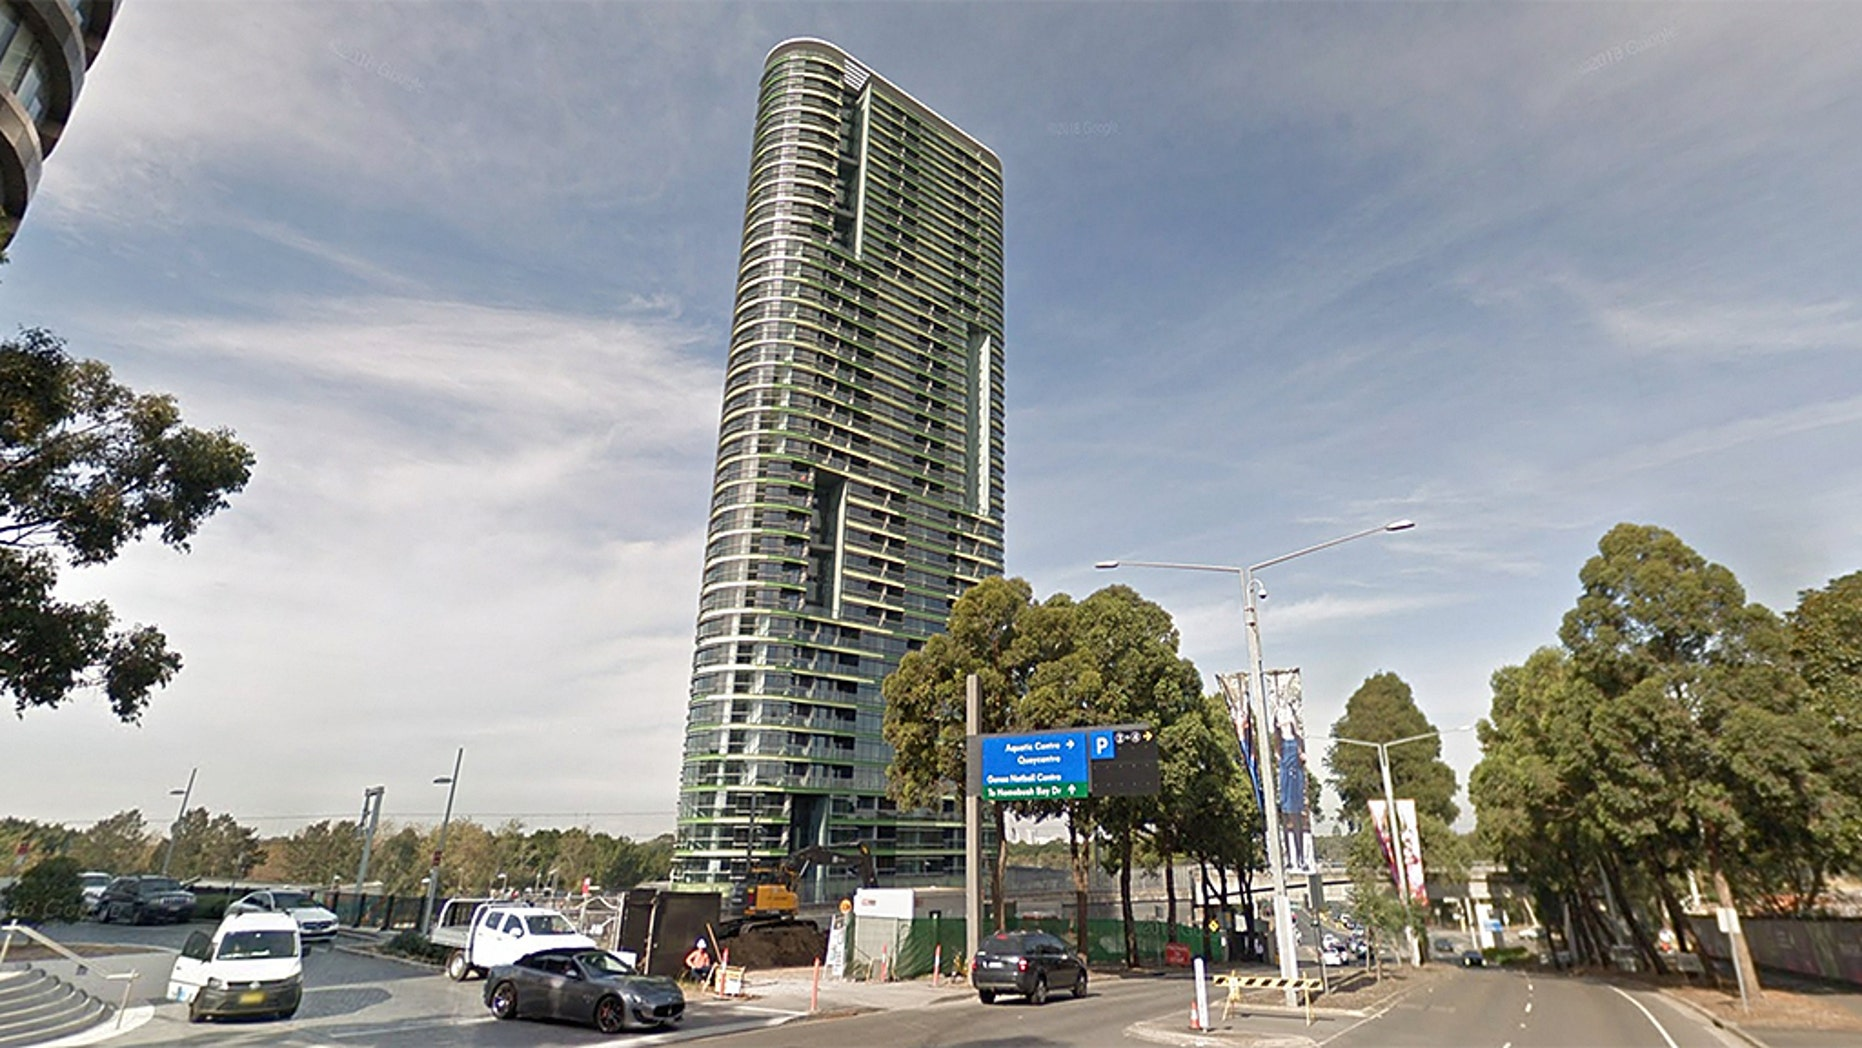 The Opal Tower in Sydney was evacuated on Monday after residents reported hearing cracking noises.